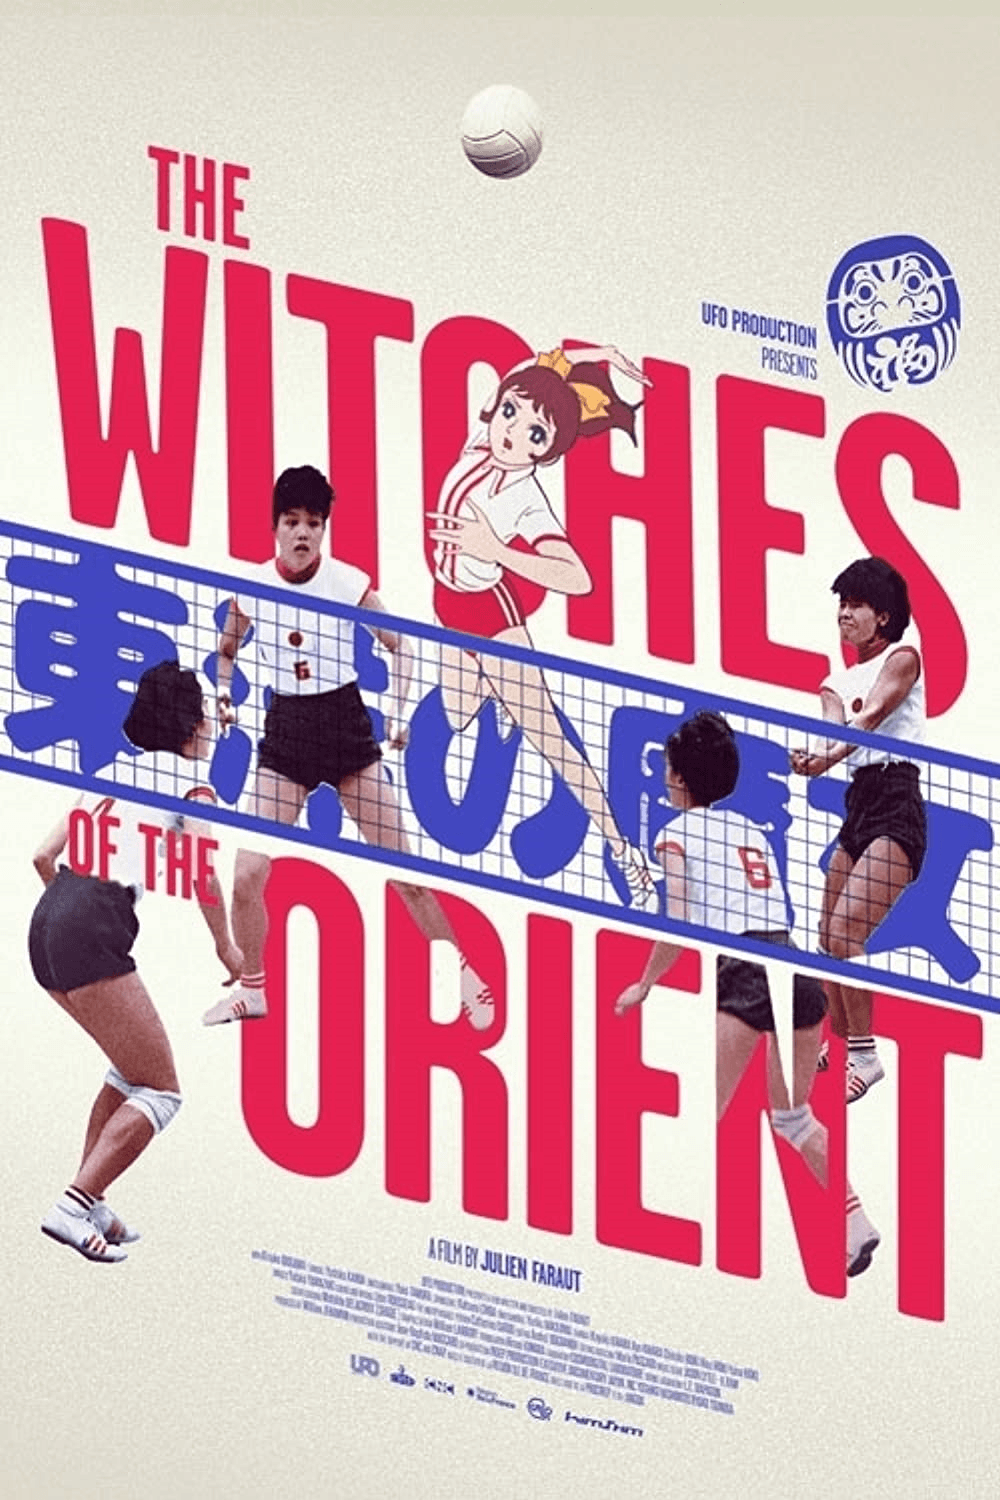 The Witches of Orient (with English subtitles)